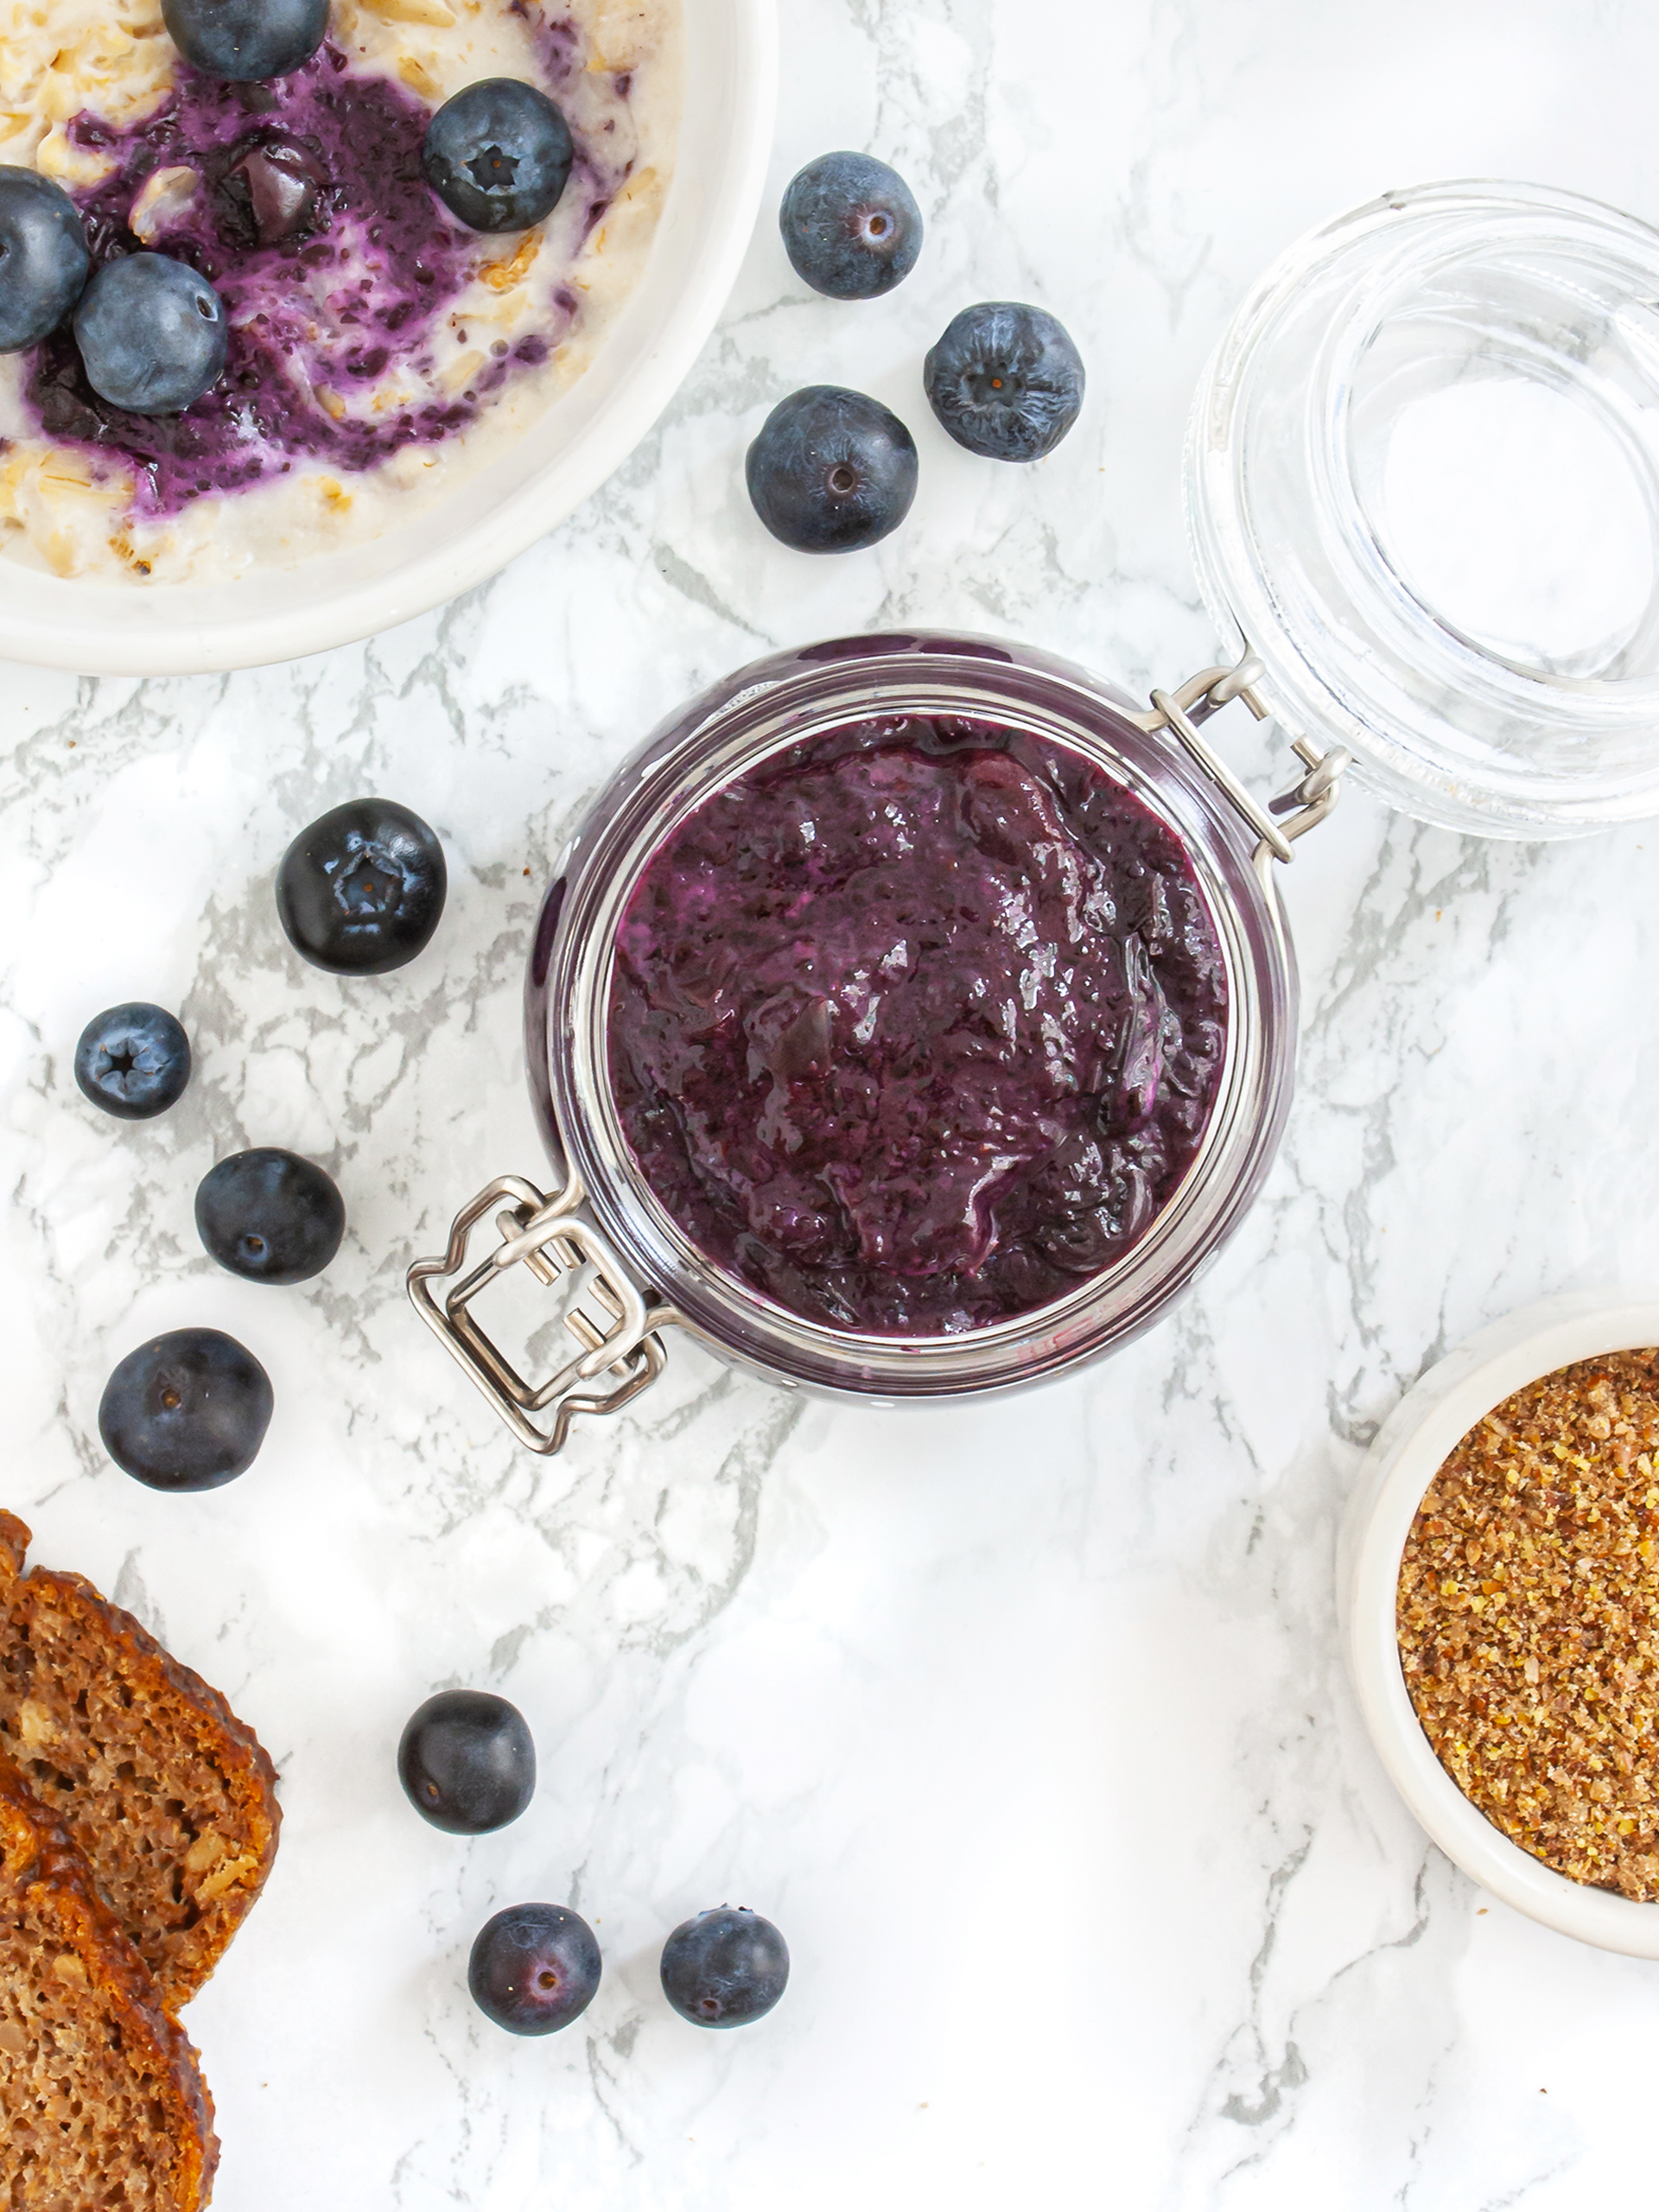 Sugar Free Blueberry Jam Recipe with Flaxseeds